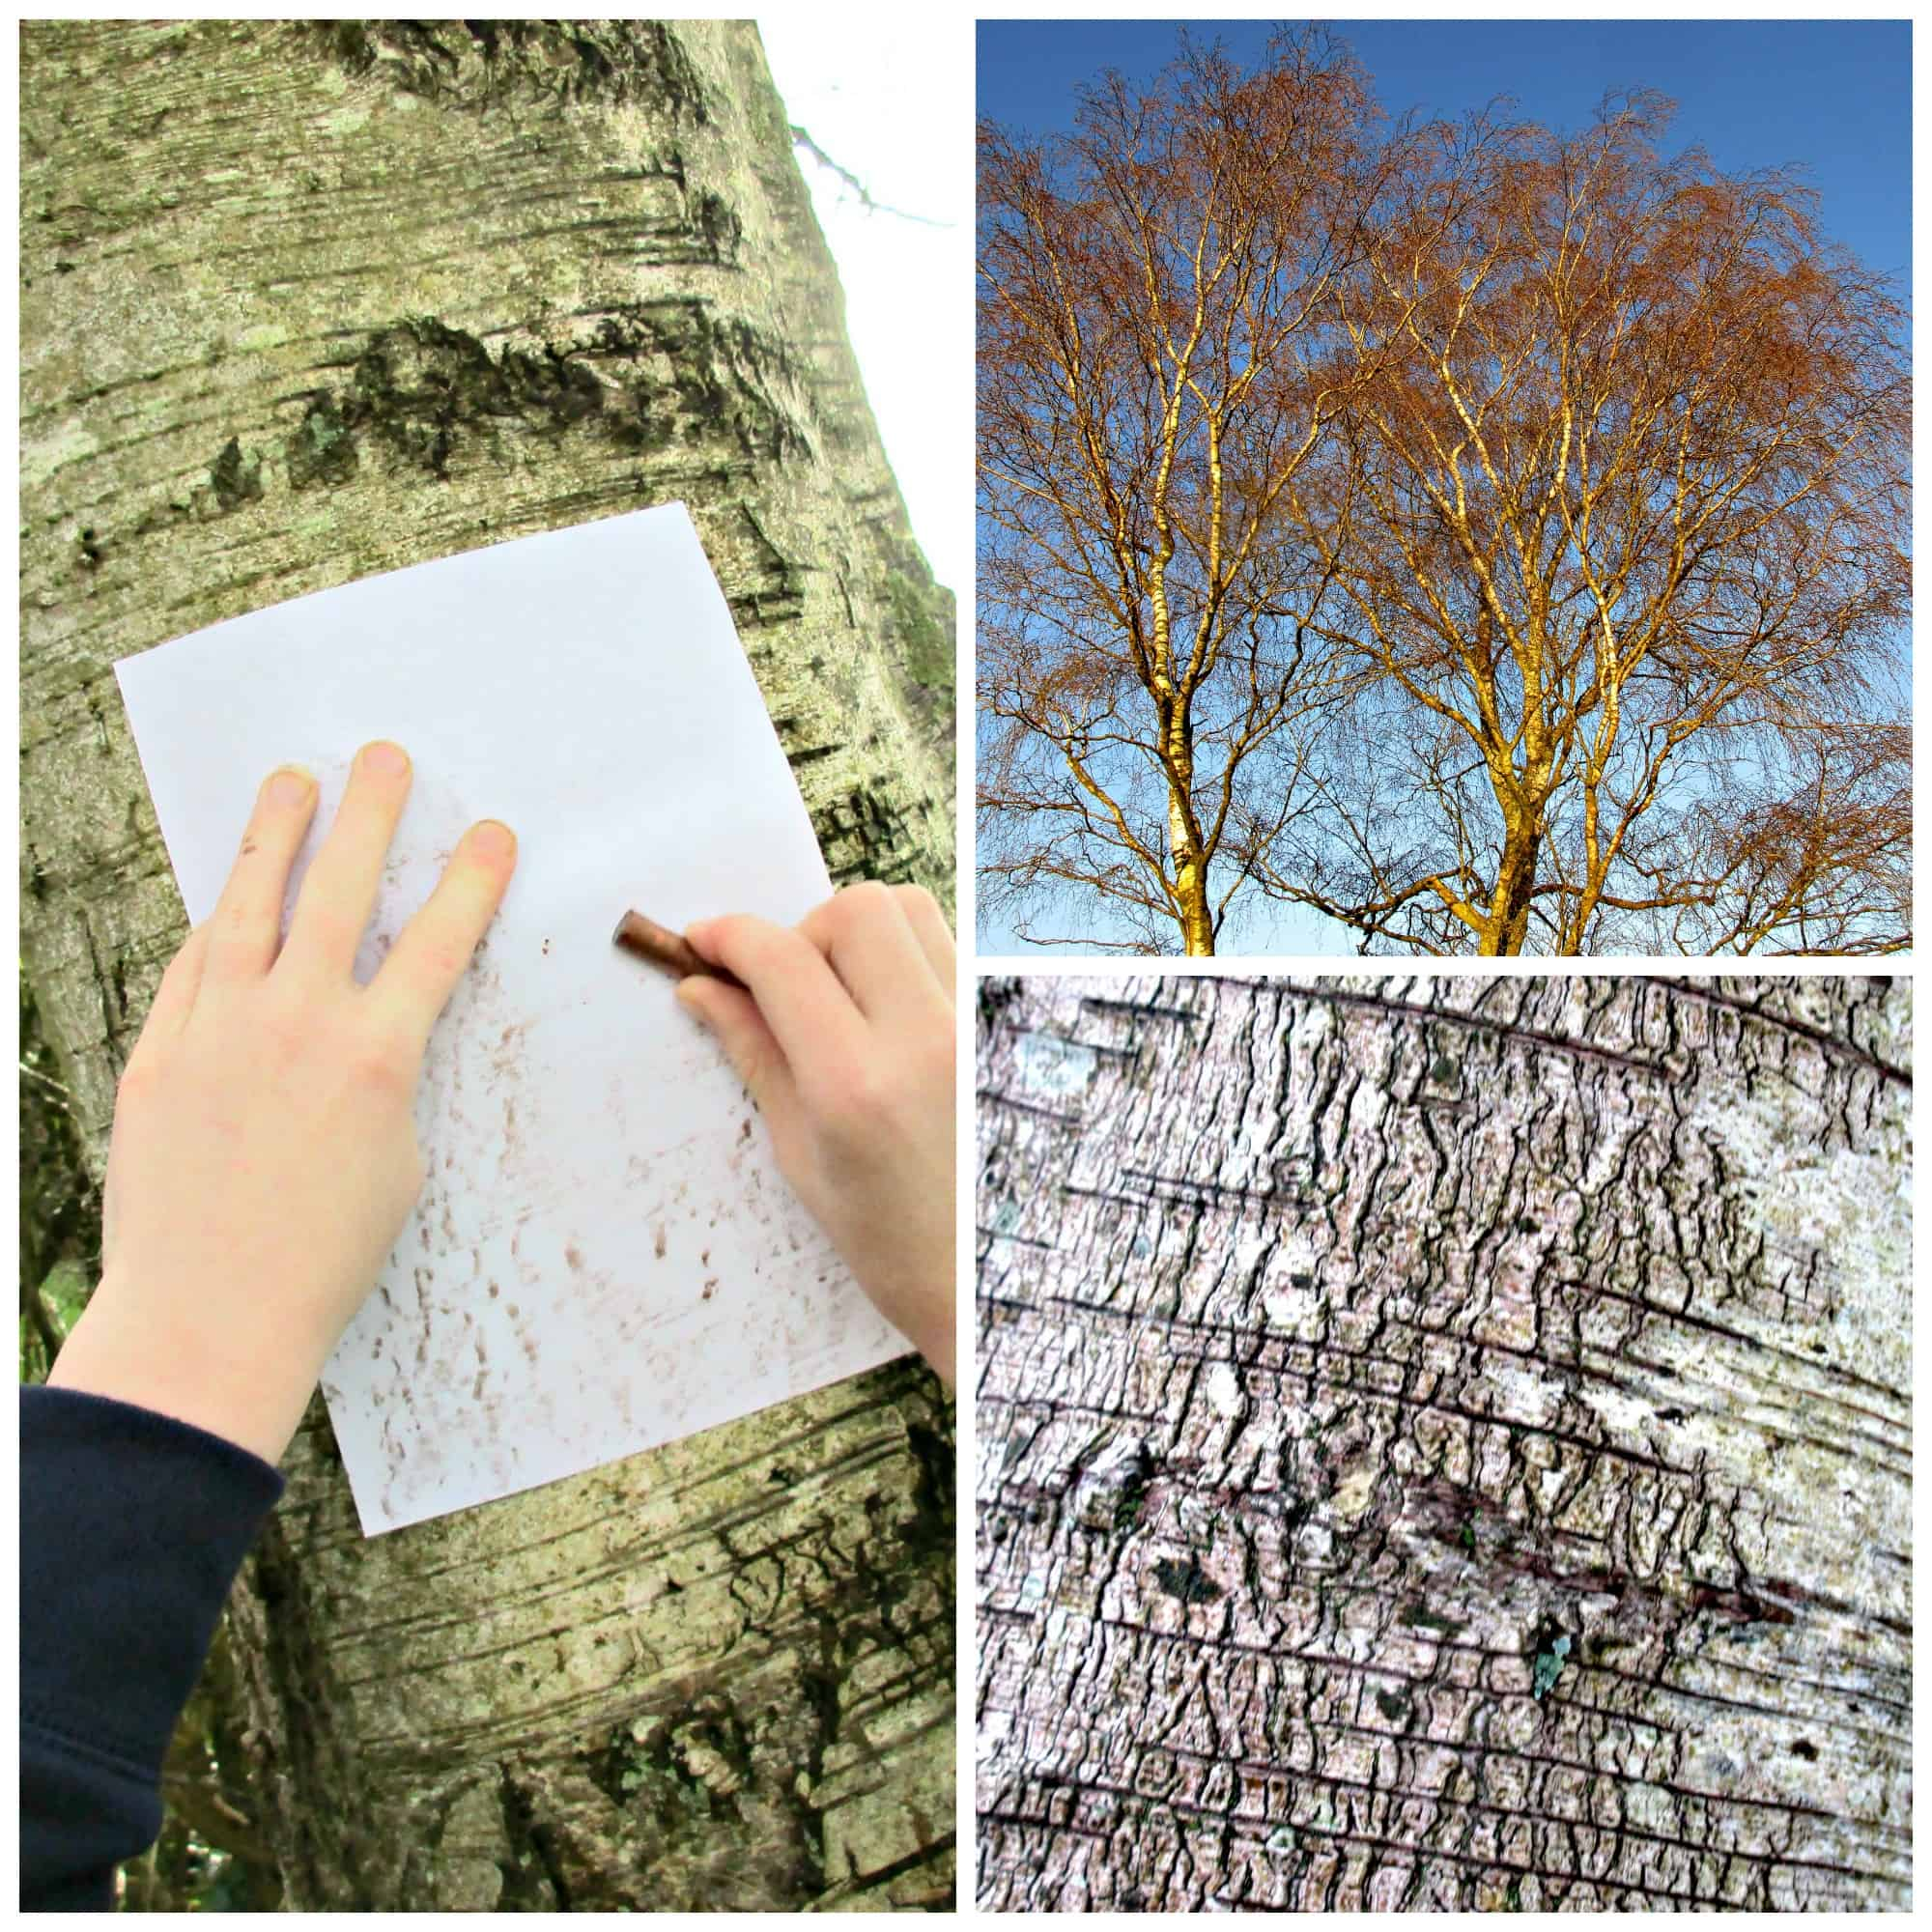 Tree bark varies wildly between species of trees, and taking a tree bark rubbing is a great way to focus on the different patterns and textures,